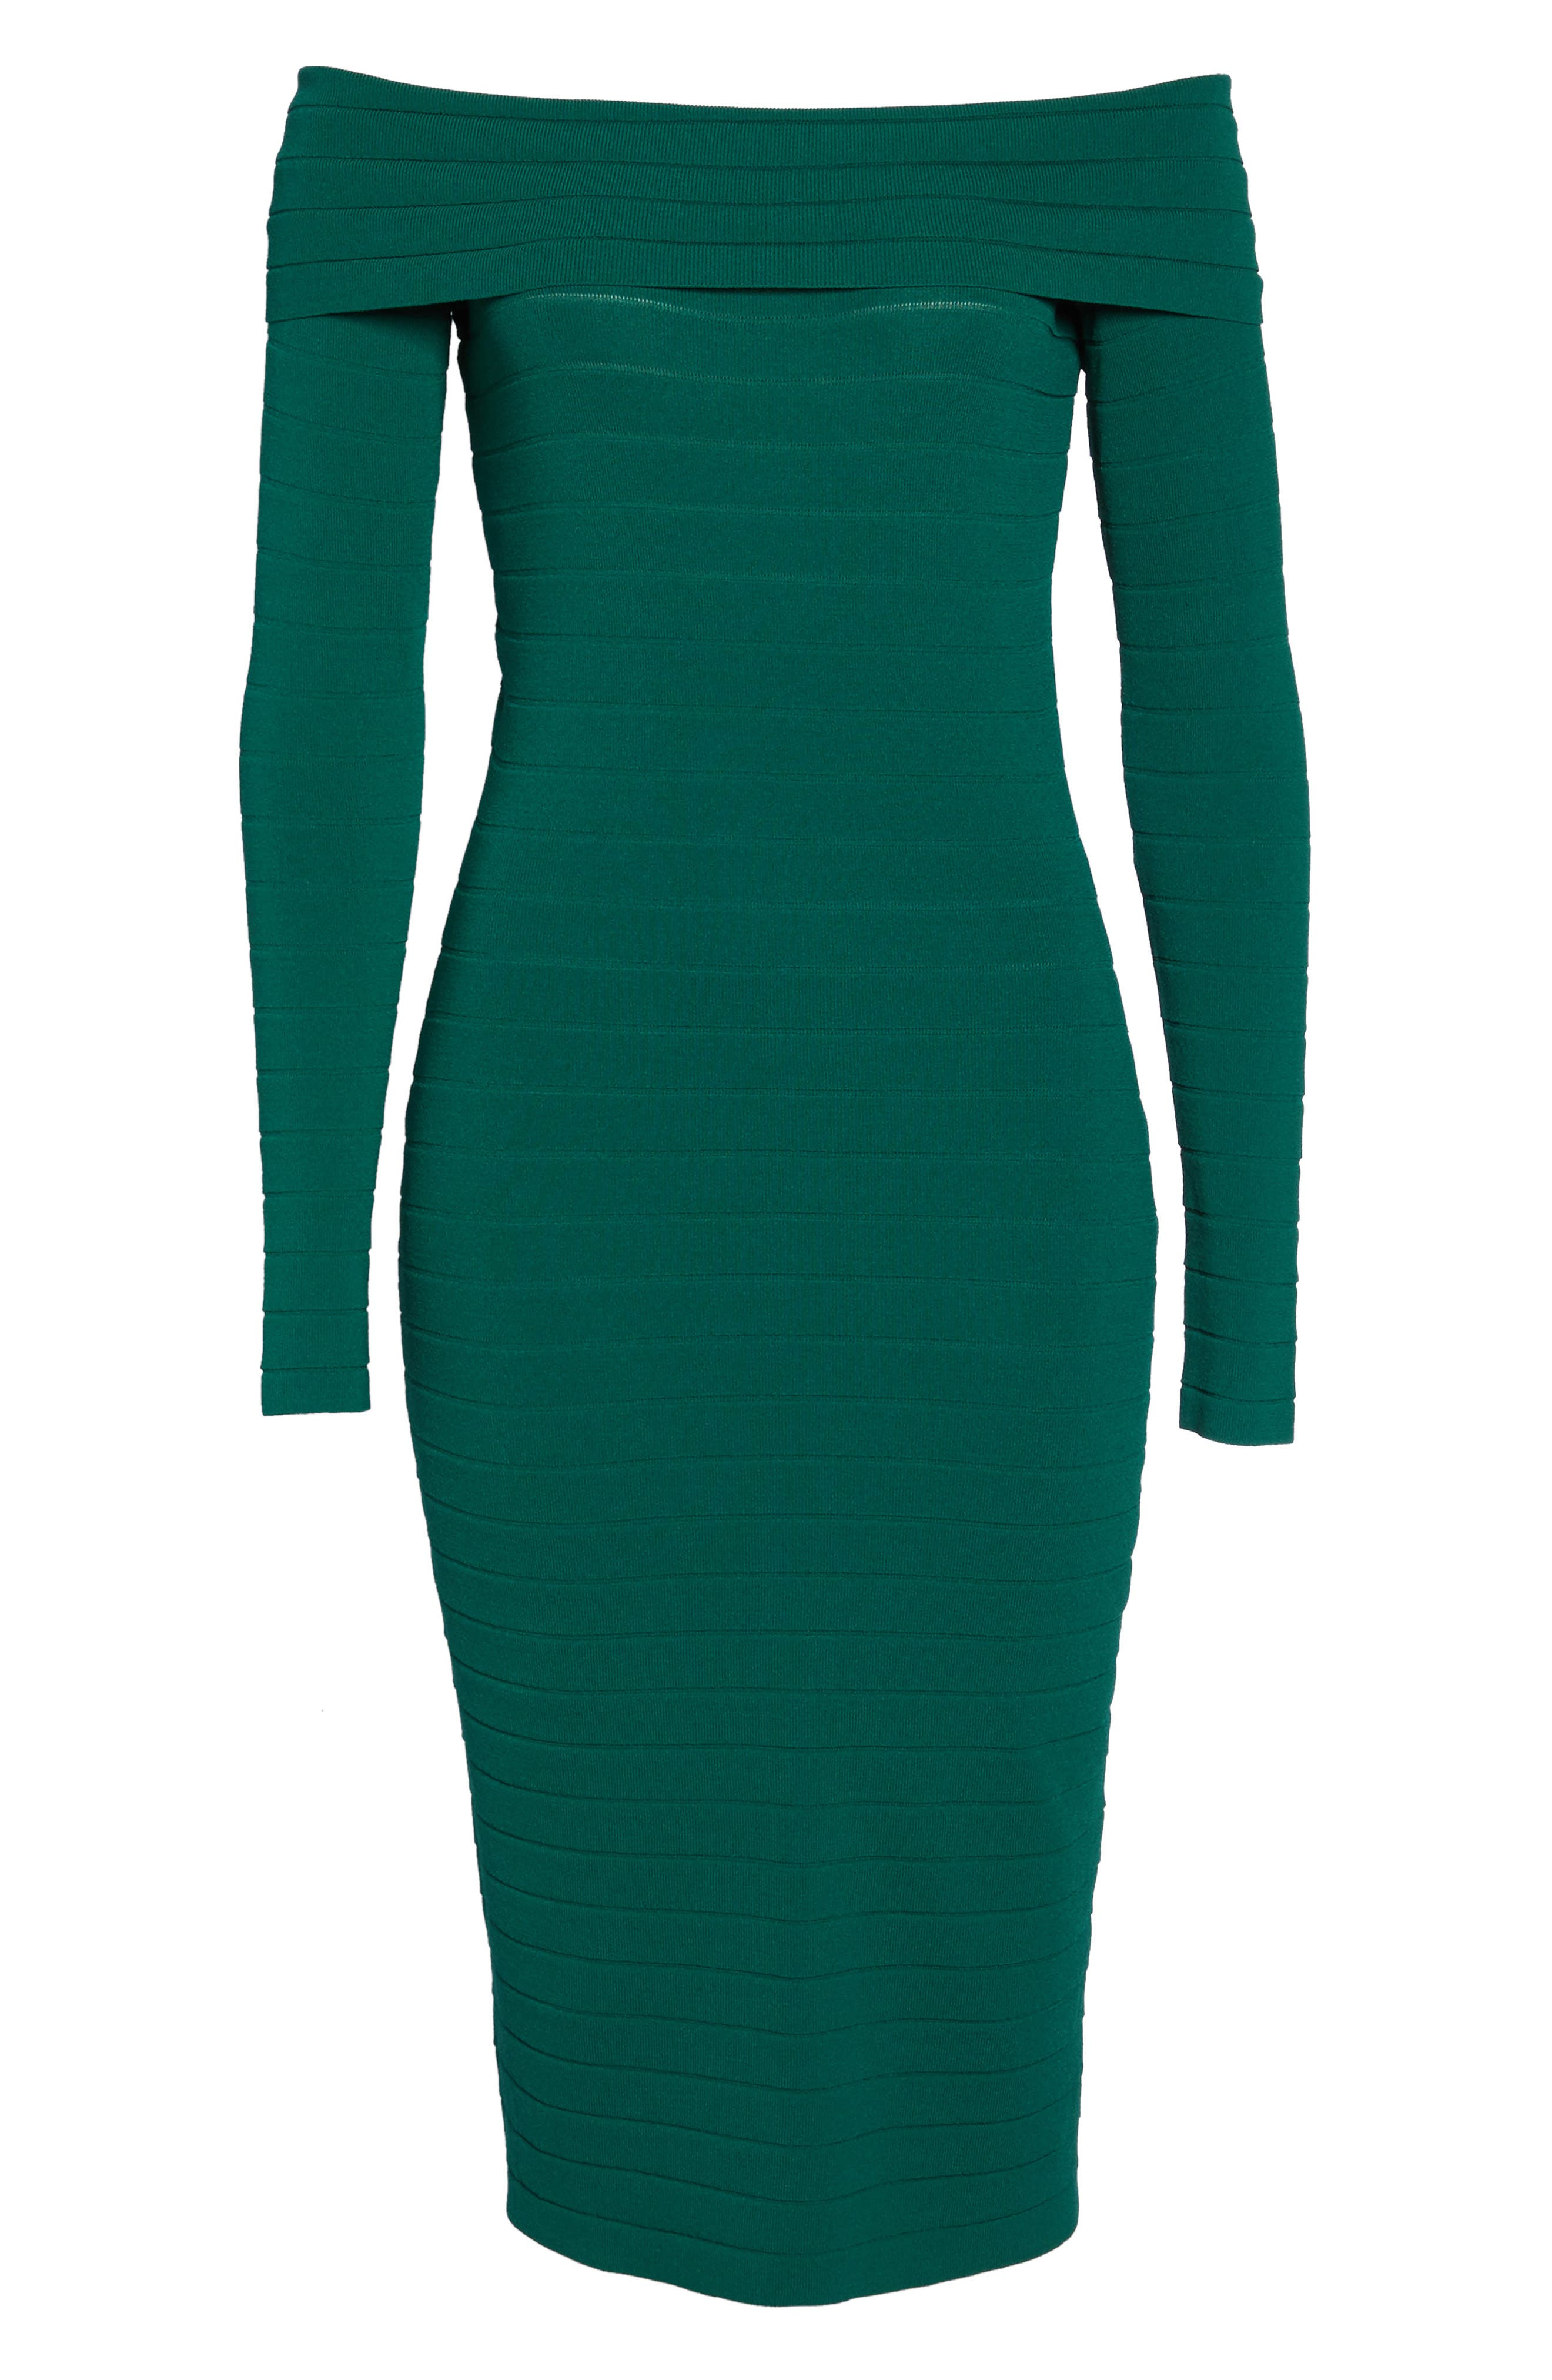 Bandage Midi Dress,                             Alternate thumbnail 27, color,